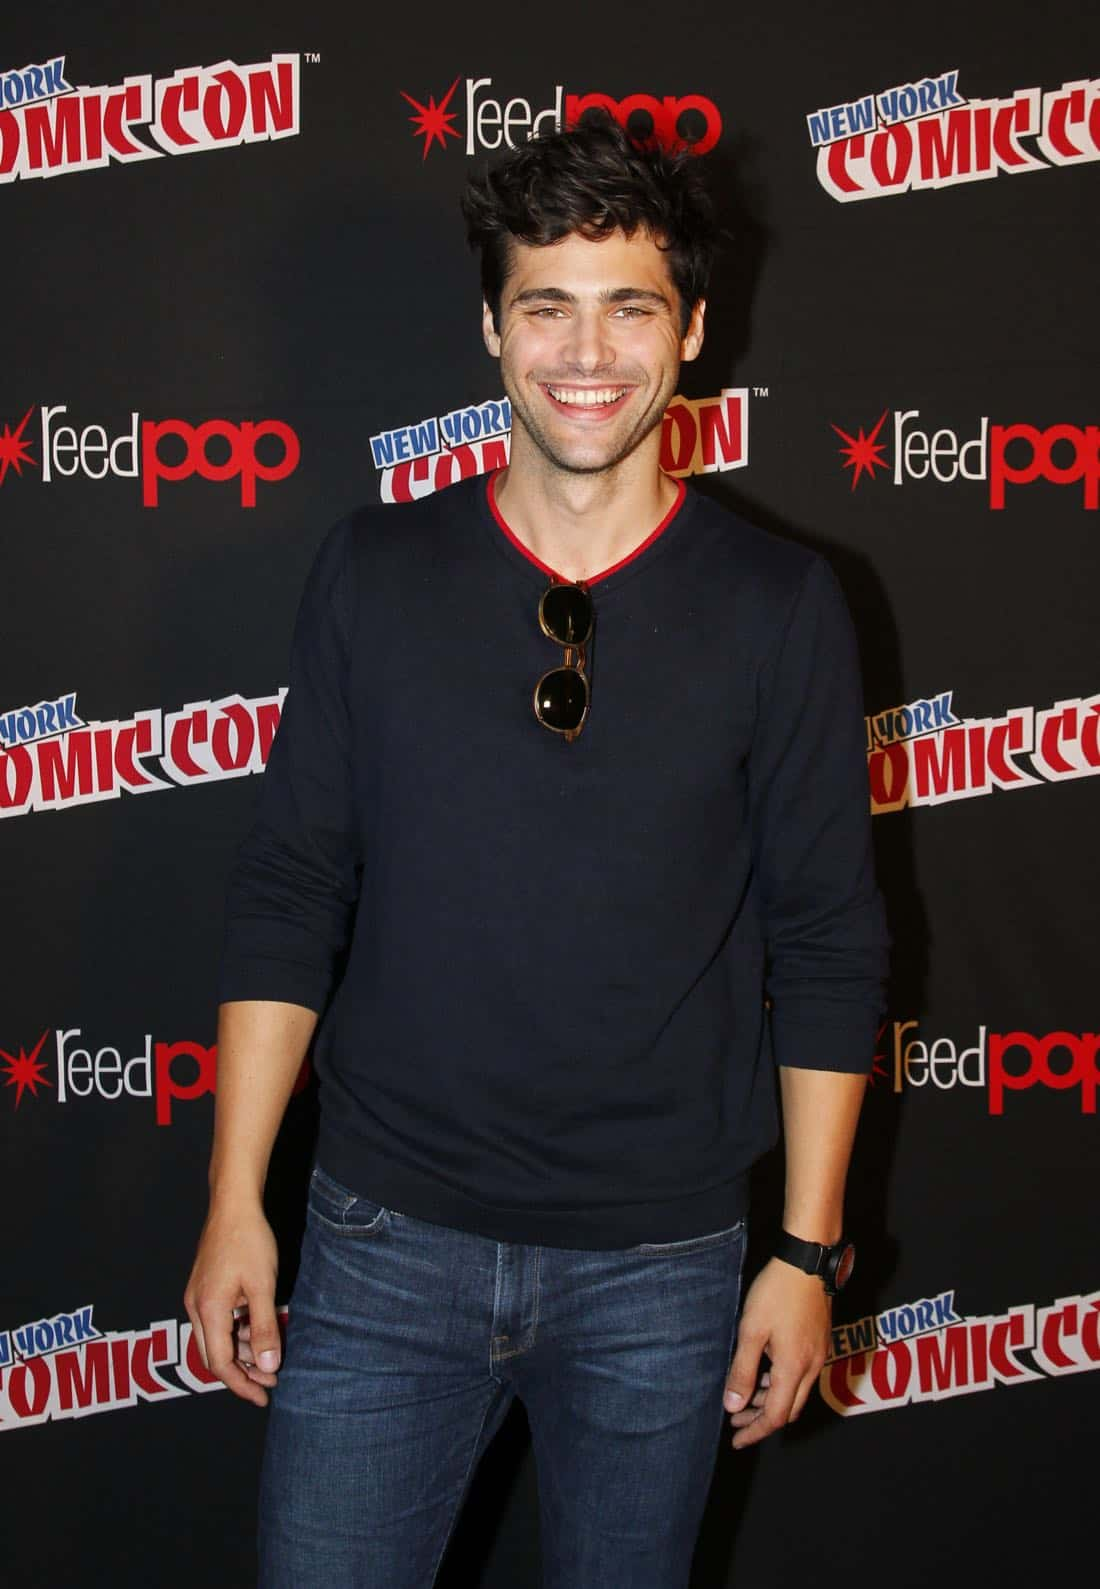 """NY COMIC-CON 2017 - Freeform's genre programming was out in full force at this year's New York Comic Con on Saturday, October 7th with executive producers and cast from the hit series """"Shadowhunters,"""" """"Beyond,"""" and new original series """"Siren.""""  (ABC/Lou Rocco) MATTHEW DADDARIO"""